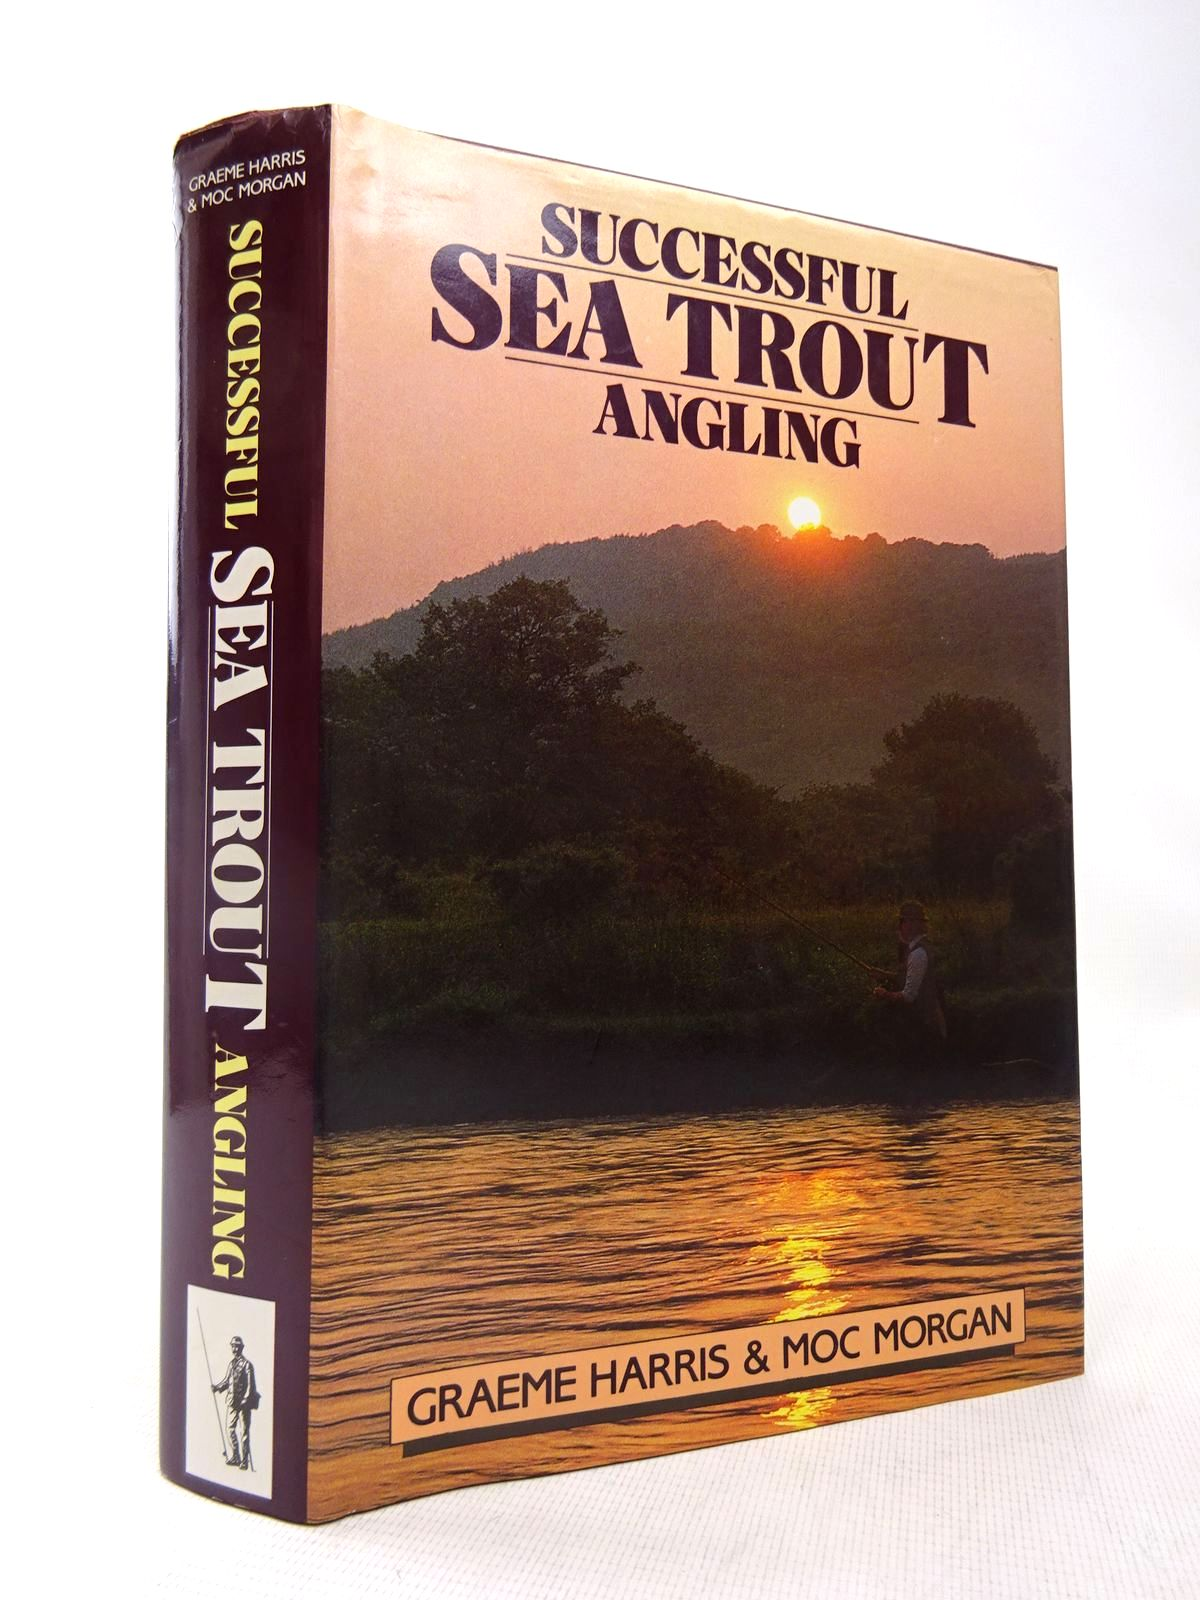 Photo of SUCCESSFUL SEA TROUT ANGLING: THE PRACTICAL GUIDE written by Harris, Graeme Morgan, Moc published by Coch-Y-Bonddu Books (STOCK CODE: 1816609)  for sale by Stella & Rose's Books